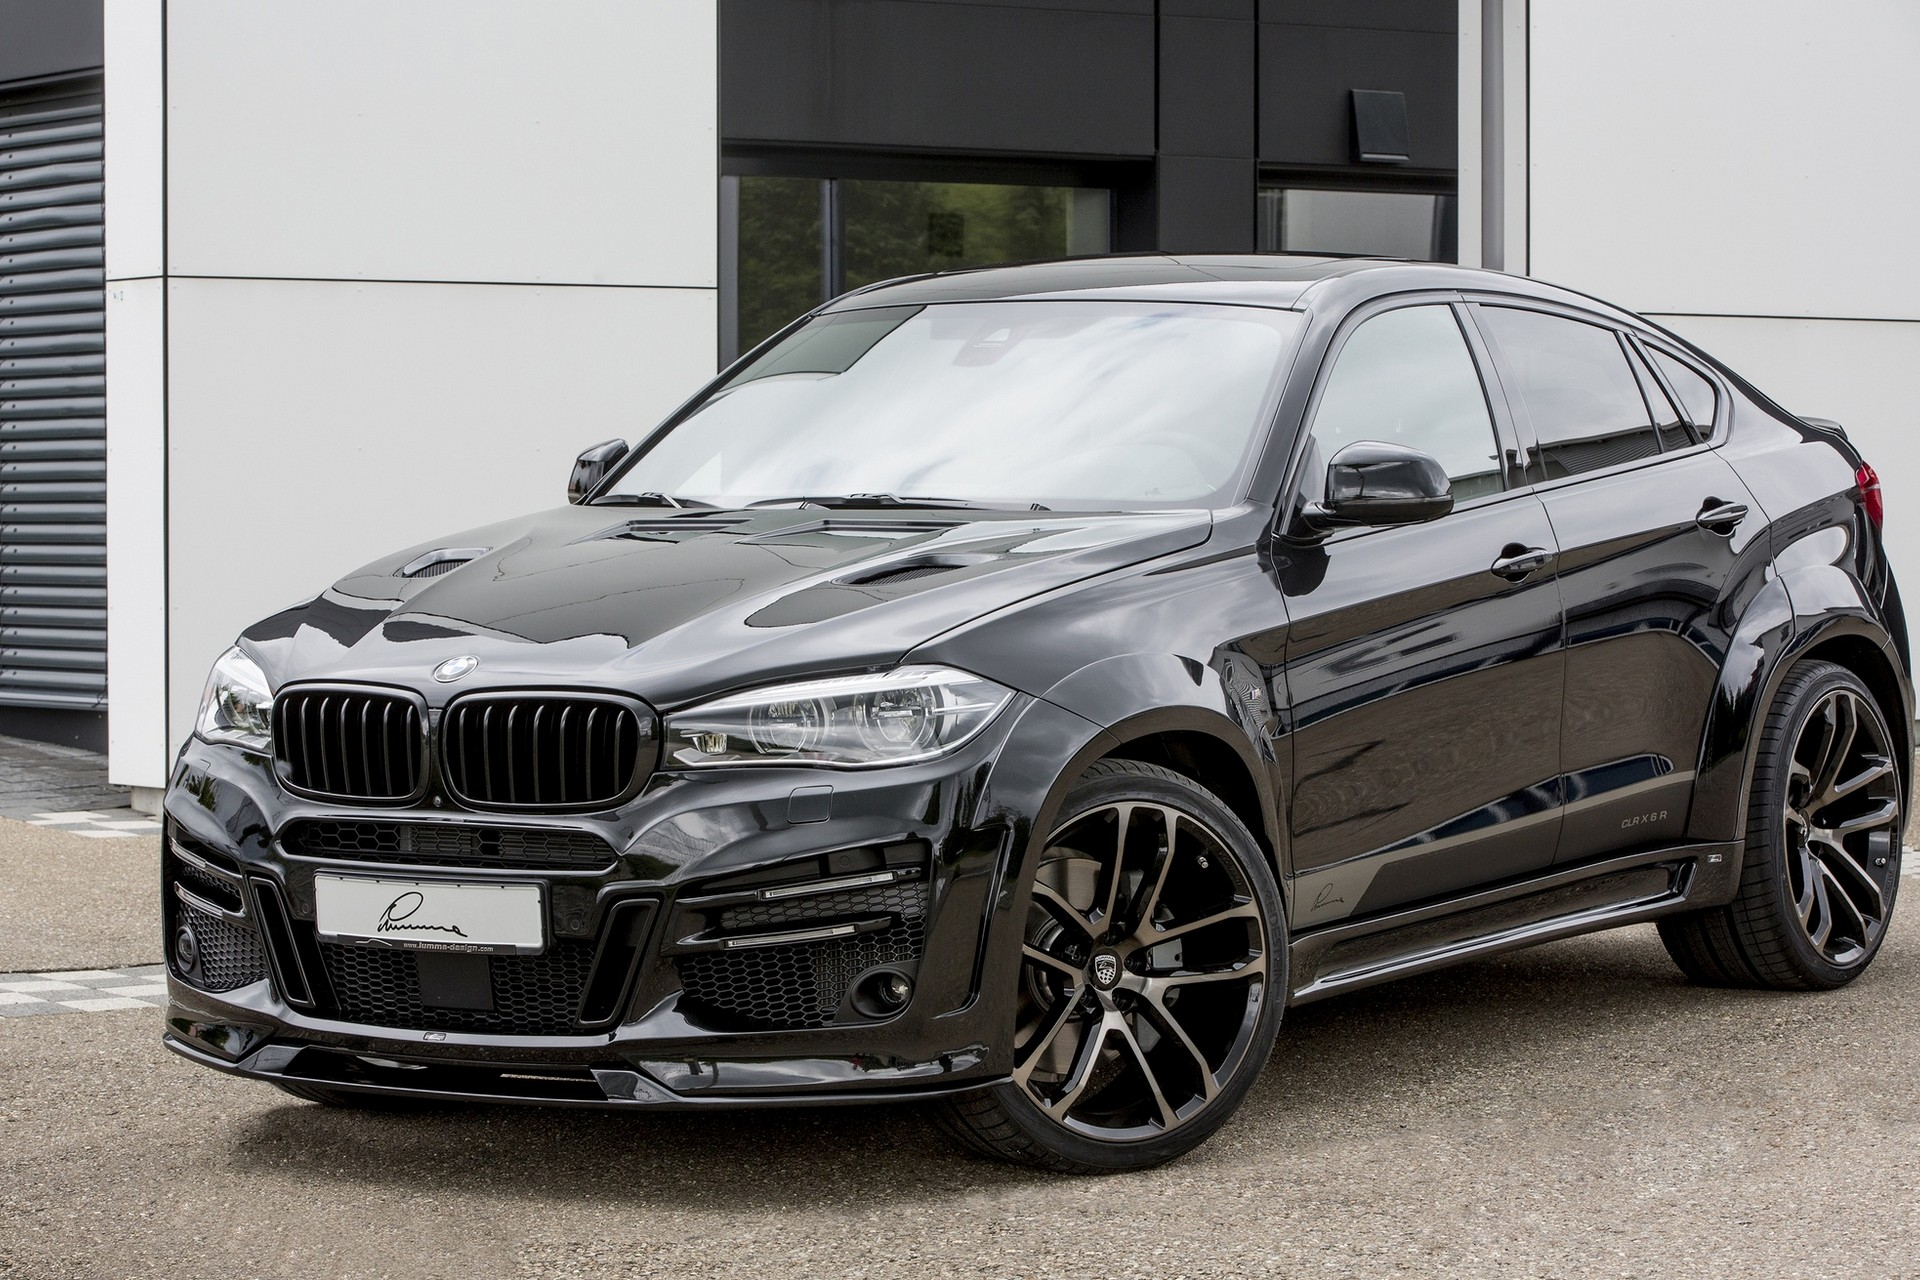 front usa in other price used year m sport vossen xdrive co bmw cuponcity